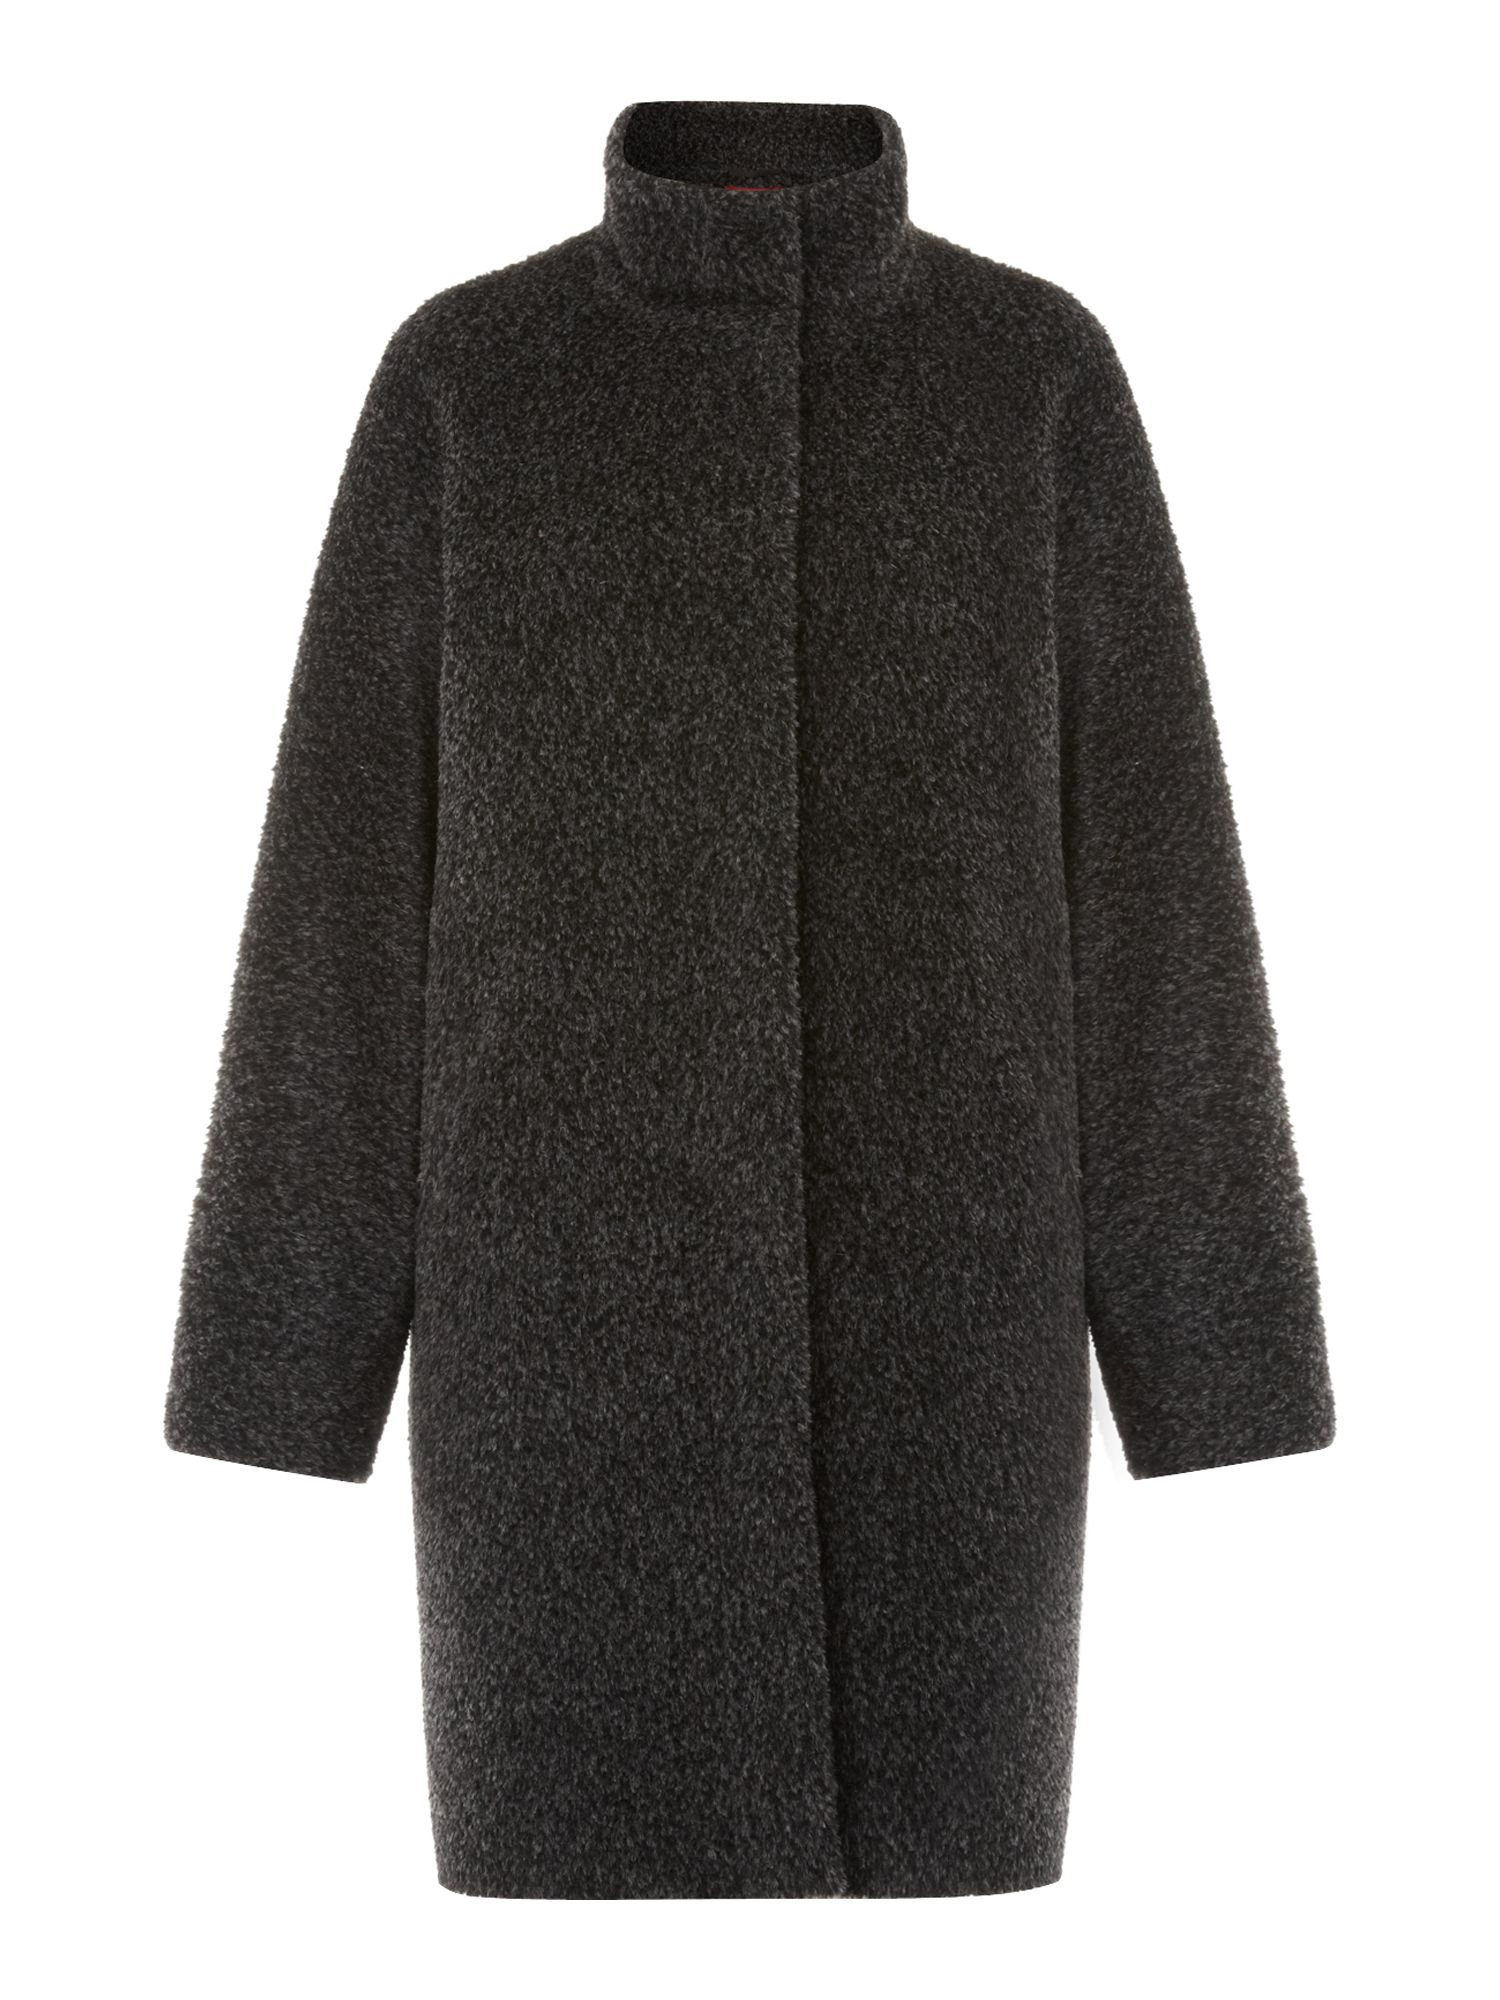 MaxMara Studio Giubilo funnel neck coat, Dark Grey